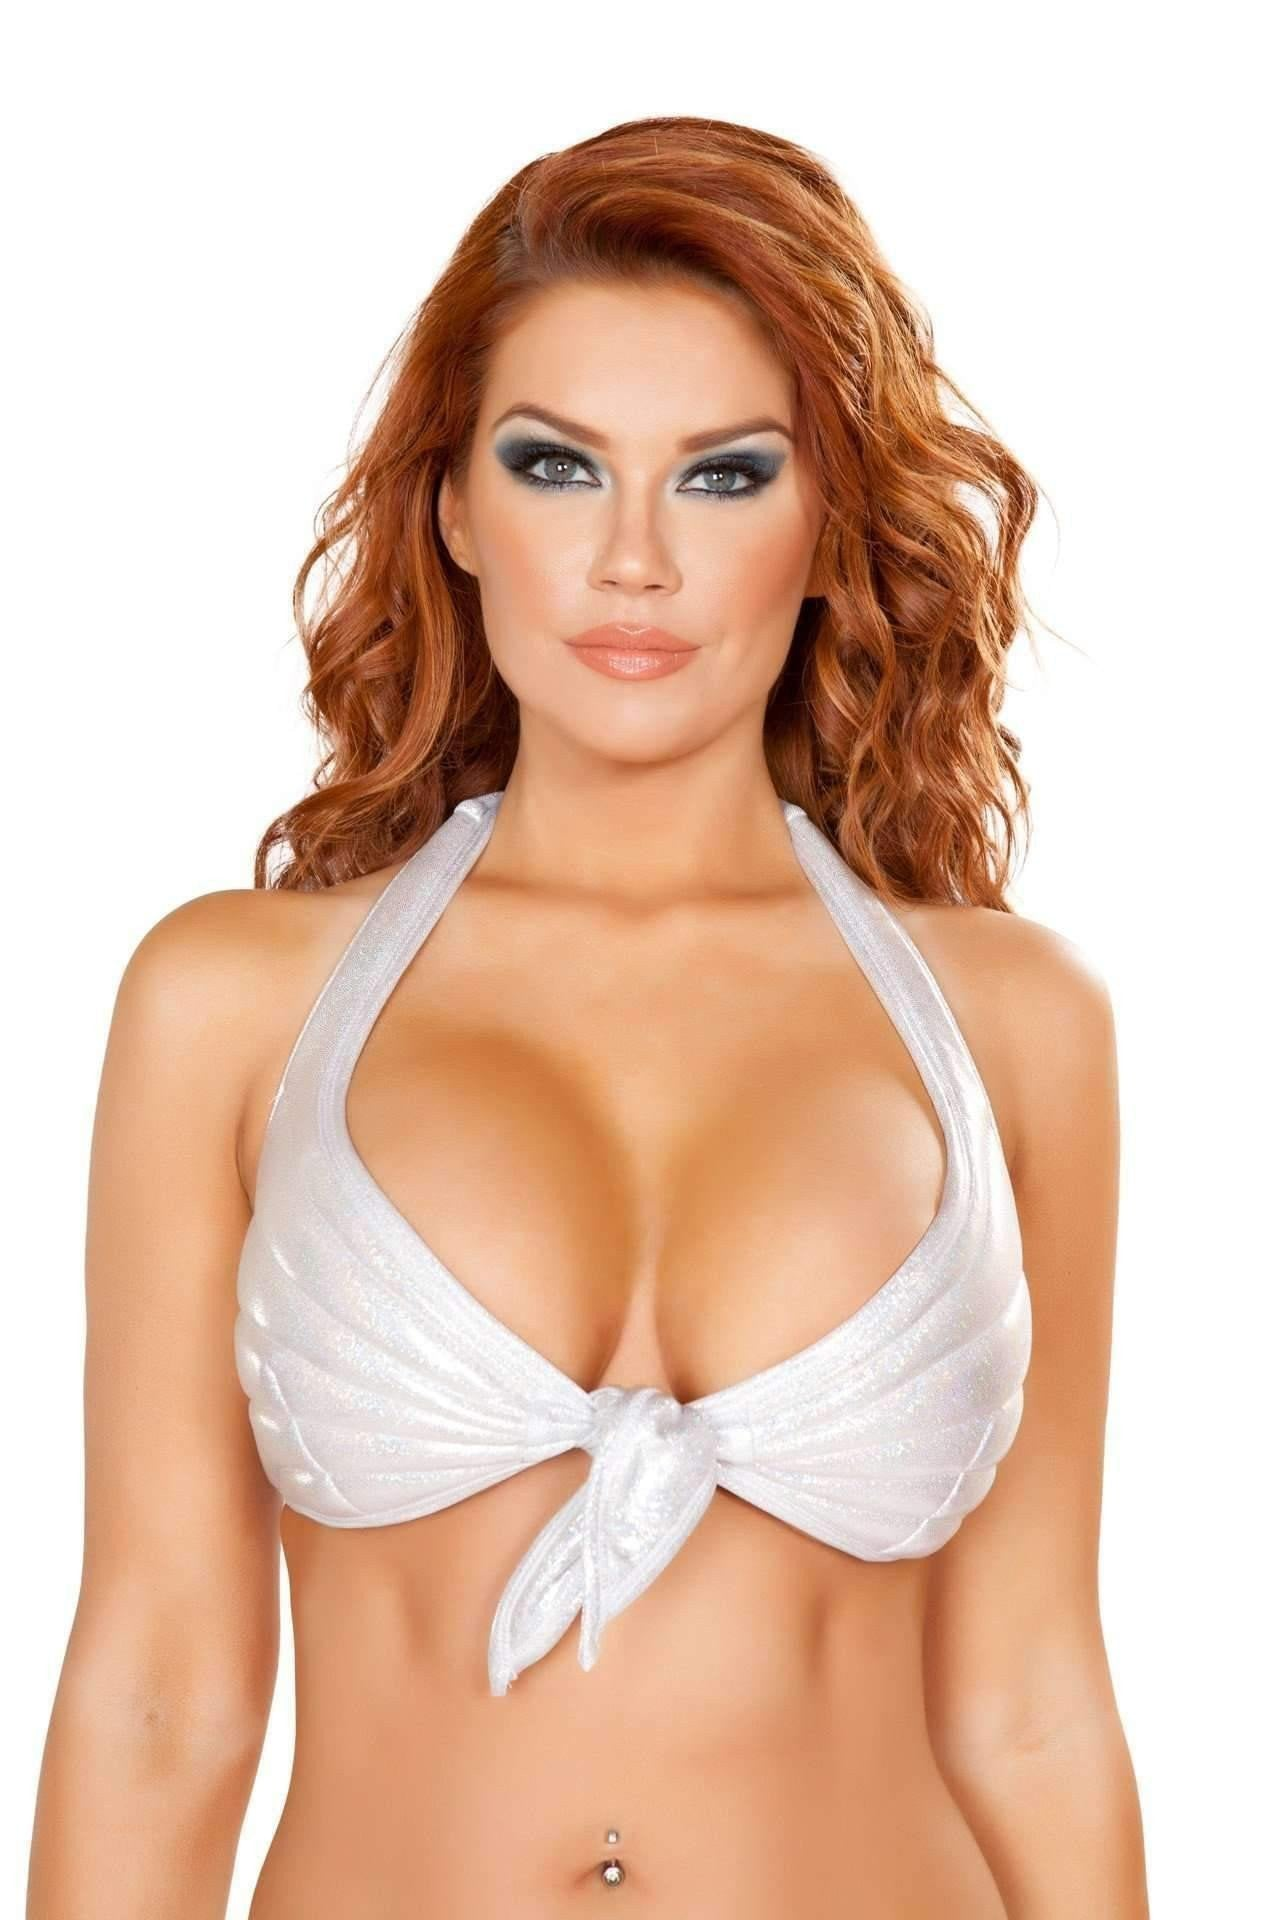 Roma Costume 4765 - Tie Front Halter Style Top-Costumes-Roma-Small-Silver-Unspoken Fashion